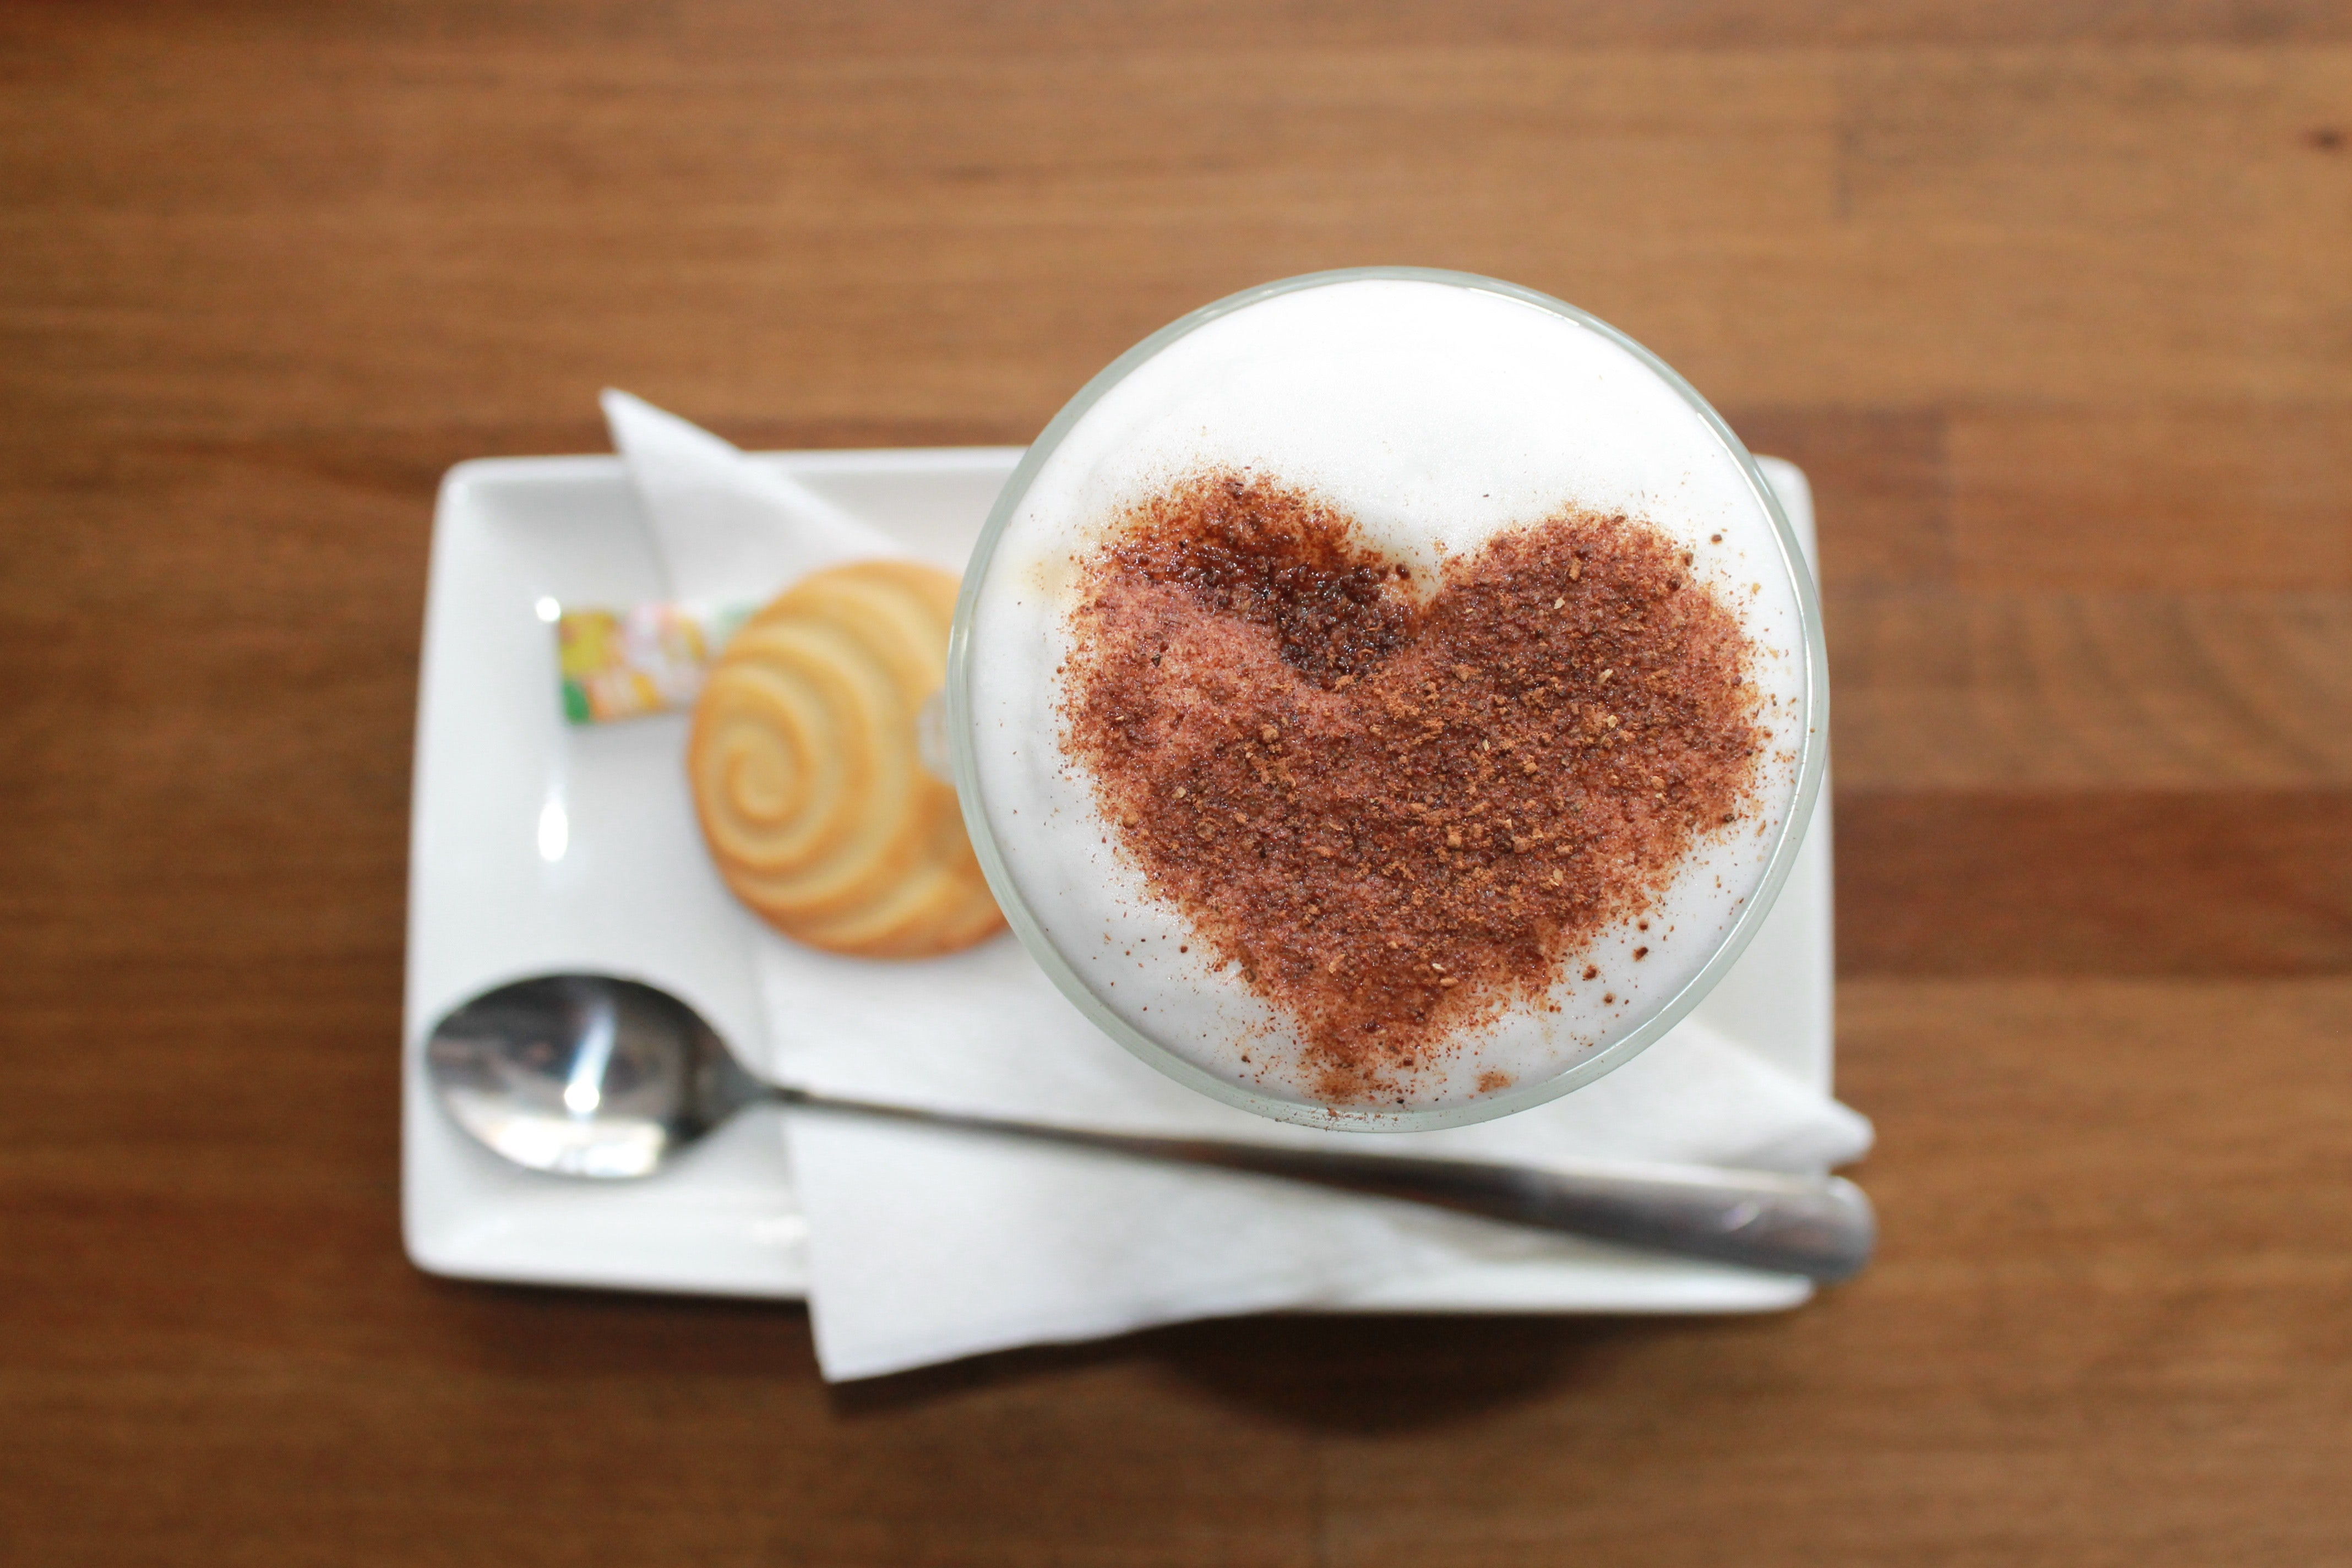 #MakeMyMonday – 5 Benefits to starting your Monday with a coffee